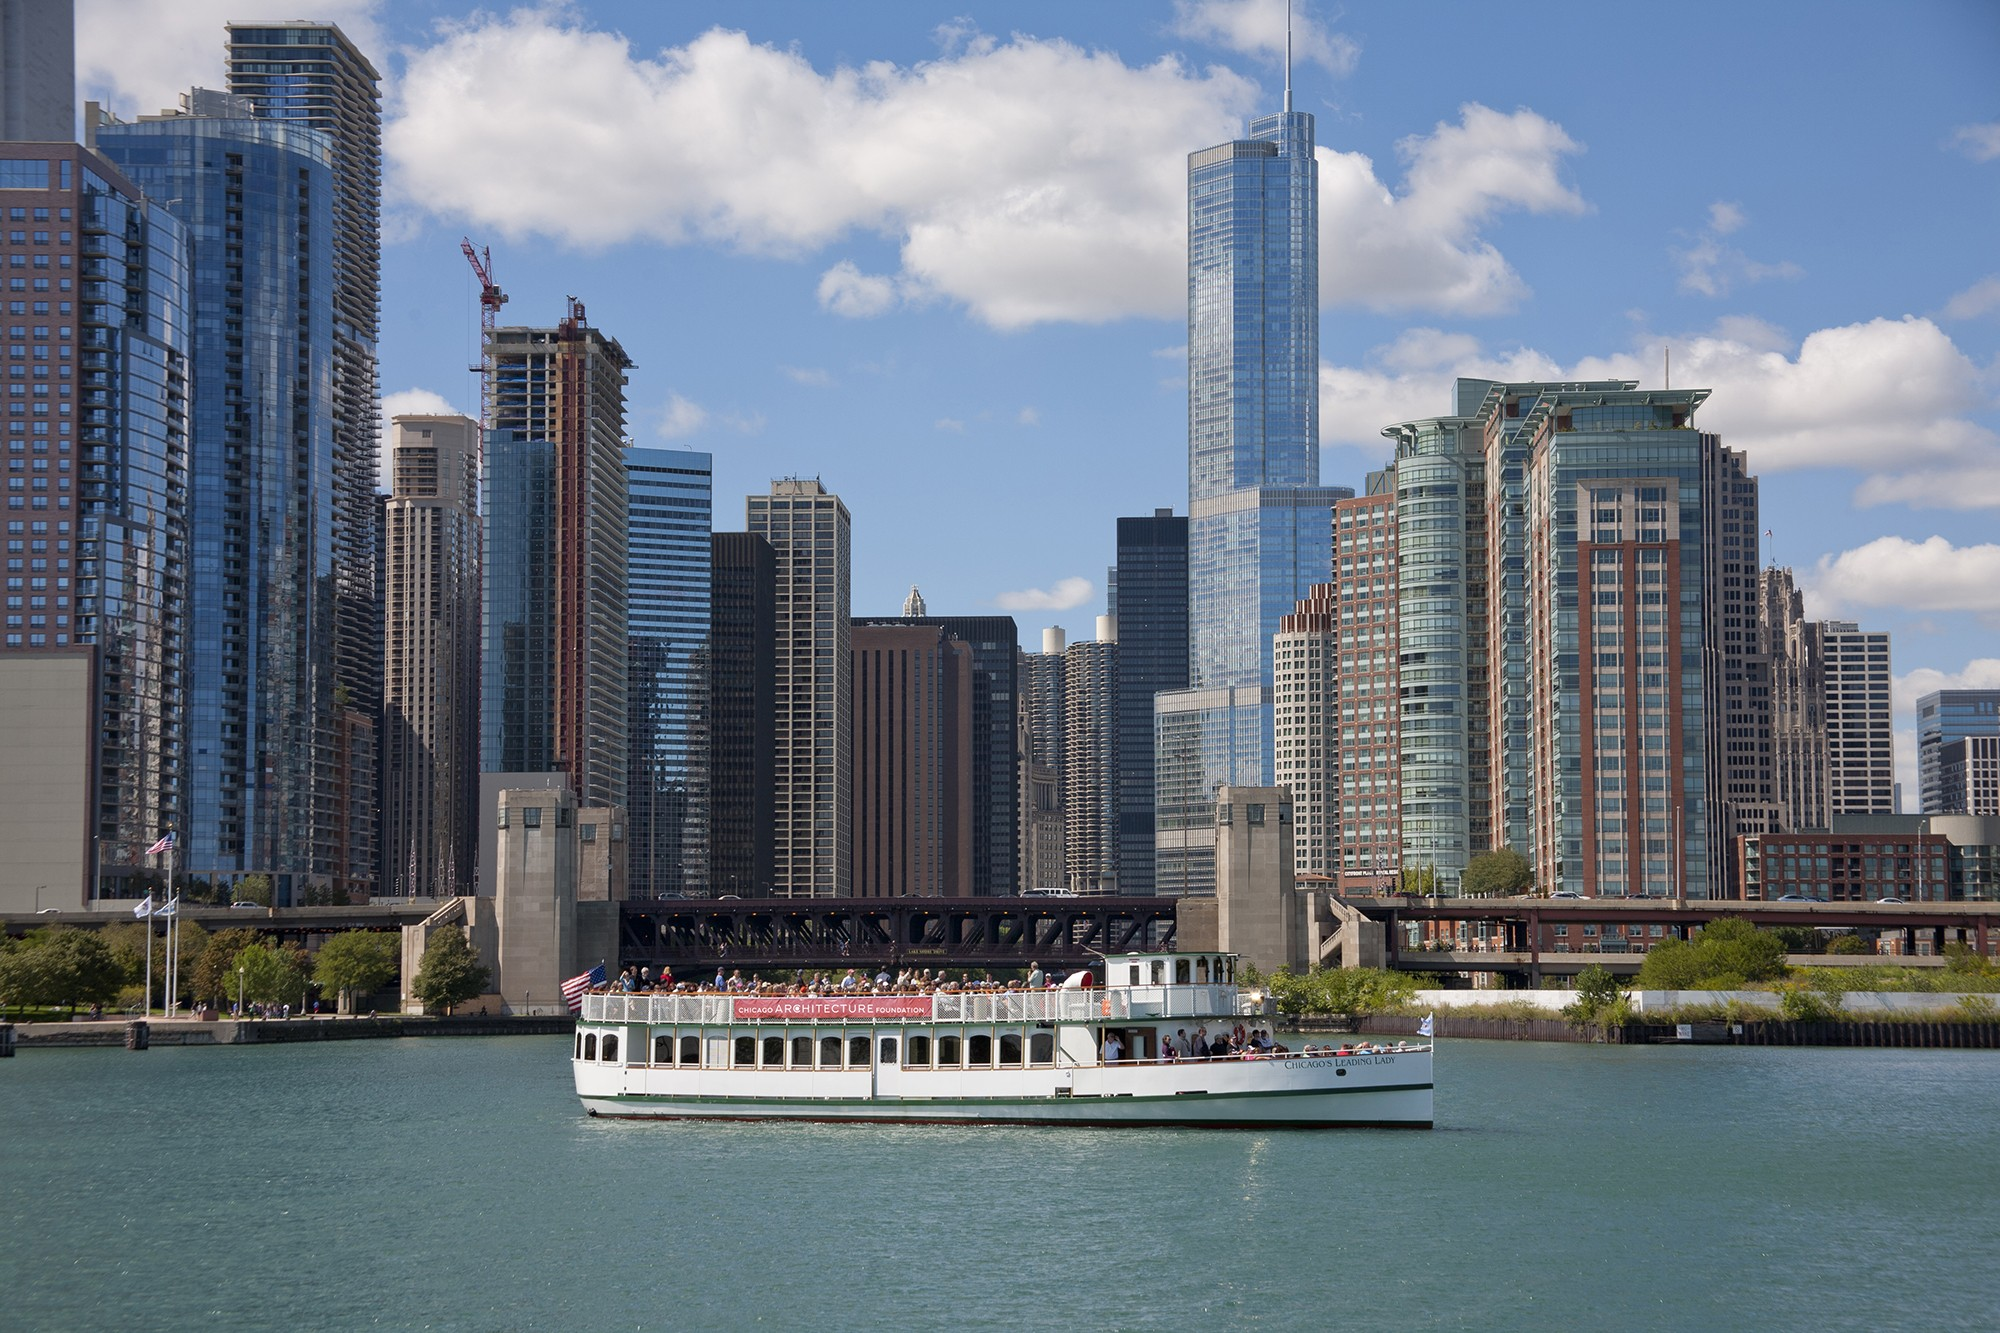 chicago architecture foundation river cruise aboard chicago's